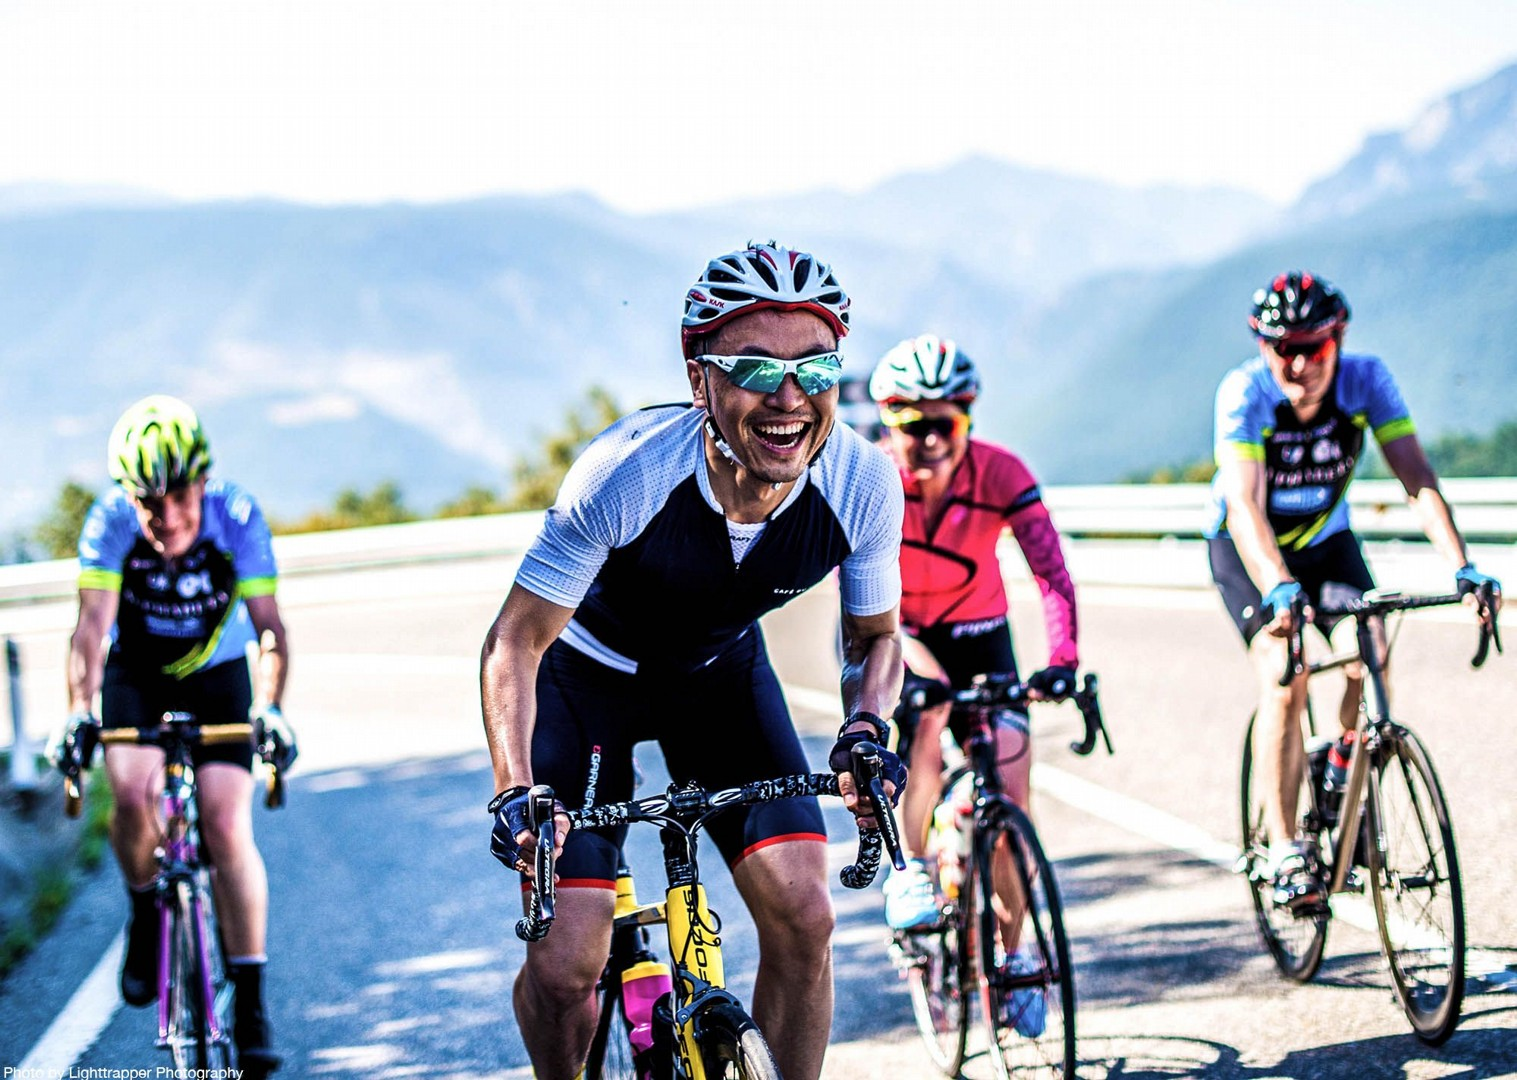 coast-to-coast-spanish-pyrenees-cycling-holiday-guided-road-tour.jpg - NEW! Spain - Spanish Pyrenees Coast to Coast - Road Cycling